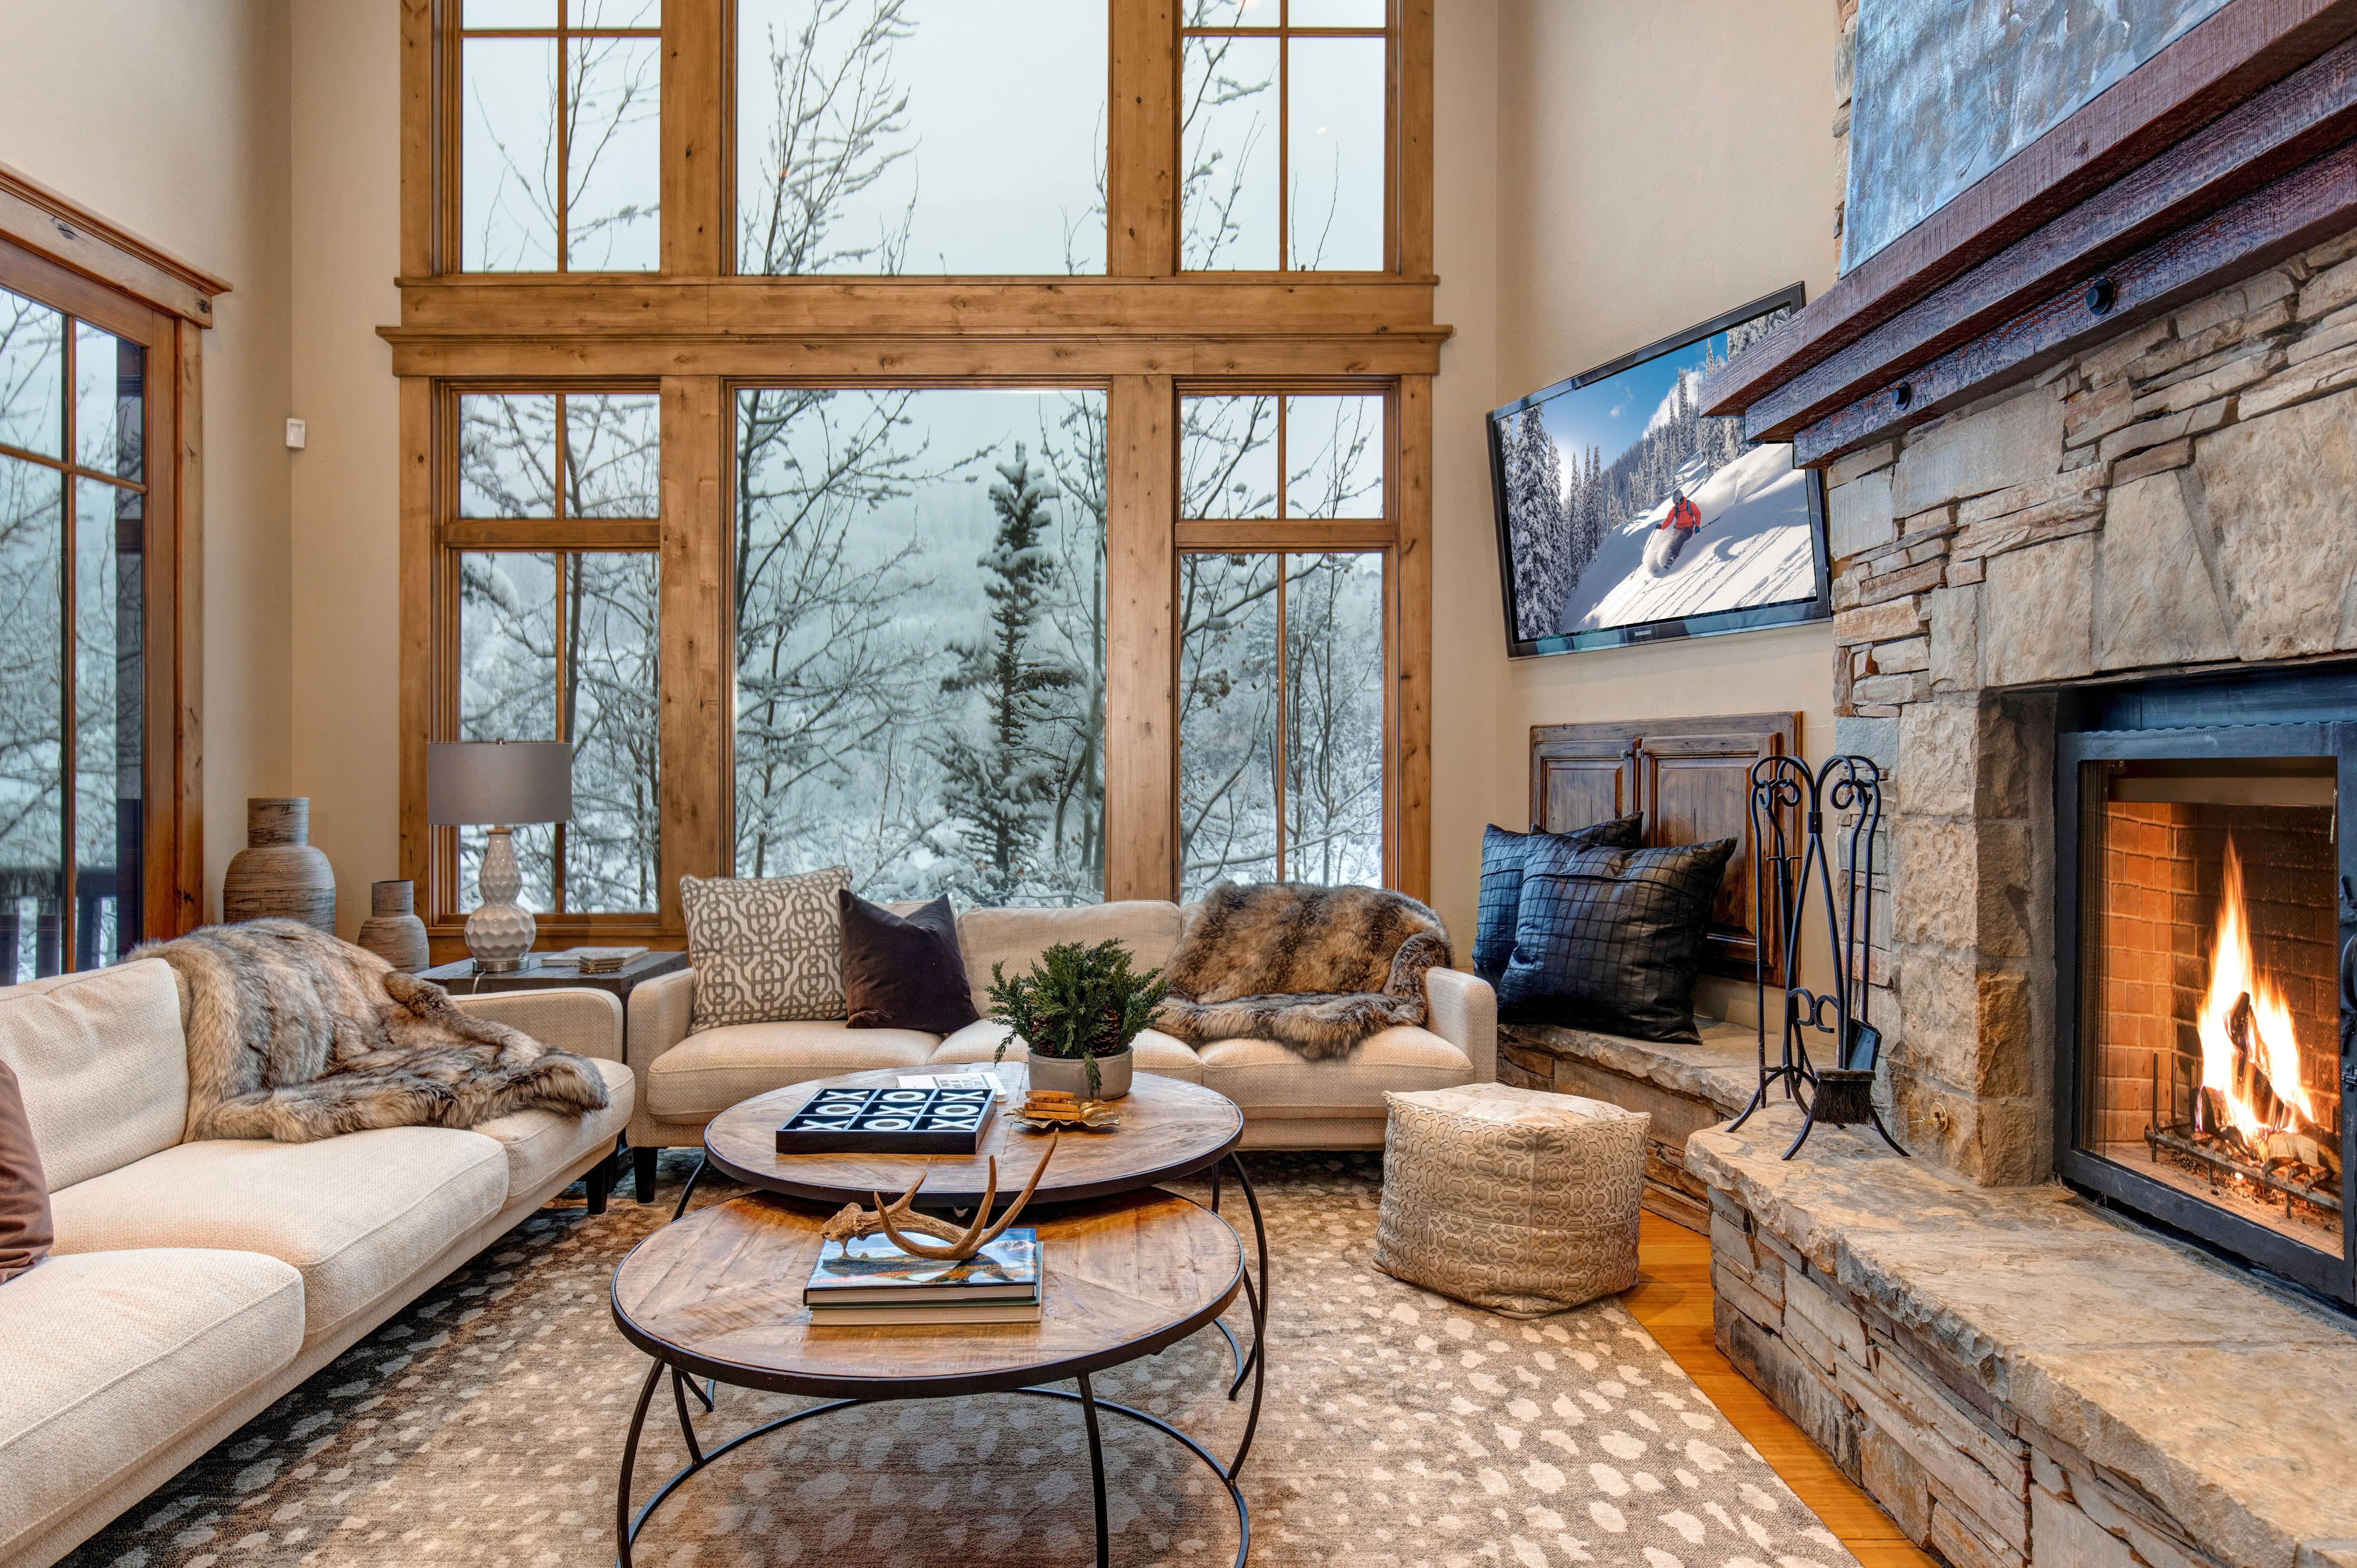 Welcome to the mountains! This luxurious estate is professionally managed by TurnKey Vacation Rentals.